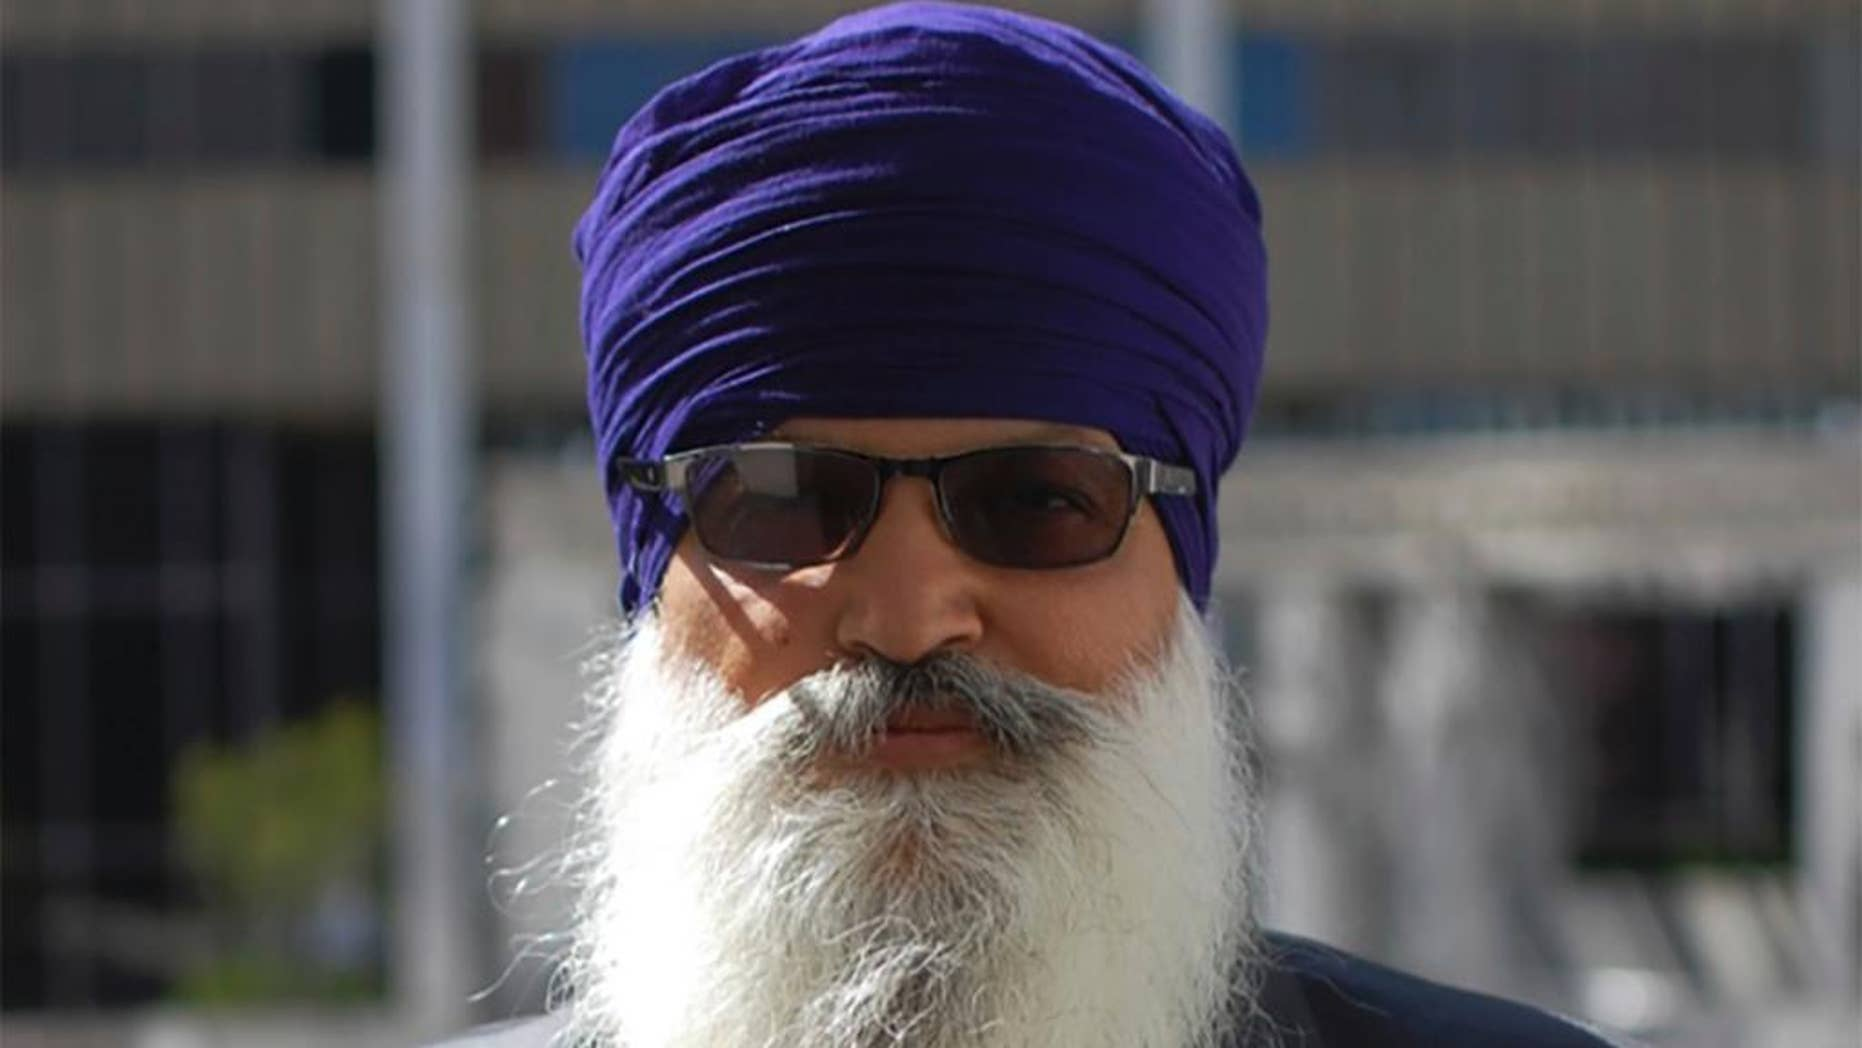 This May 12, 2015, photo provided by the Sikh Coalition shows Lakhbir Singh, one of the four truckers in the case against J.B. Hunt Transportation Services Inc., taken at the Los Angeles Equal Employment Opportunity Commission office during conciliation in Los Angeles. Four Sikh truckers who could not comply with drug testing that required them to provide clipped hair samples or remove their turban because those violate religious principles reach a settlement with a major national trucking company. (Simran Kaur/The Sikh Coalition via AP)